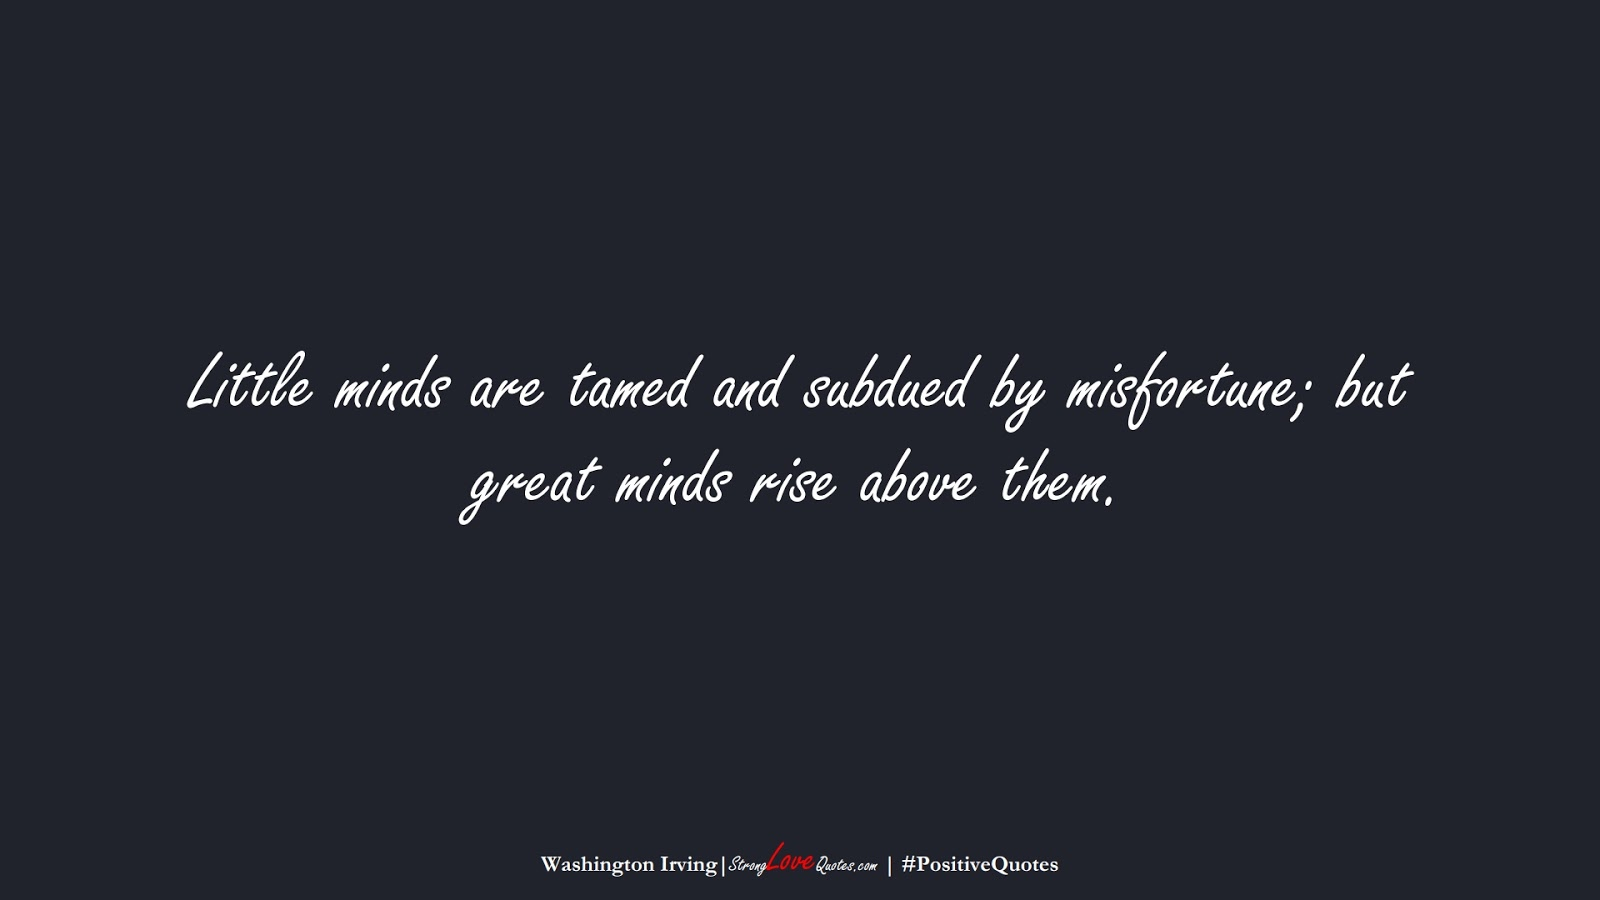 Little minds are tamed and subdued by misfortune; but great minds rise above them. (Washington Irving);  #PositiveQuotes